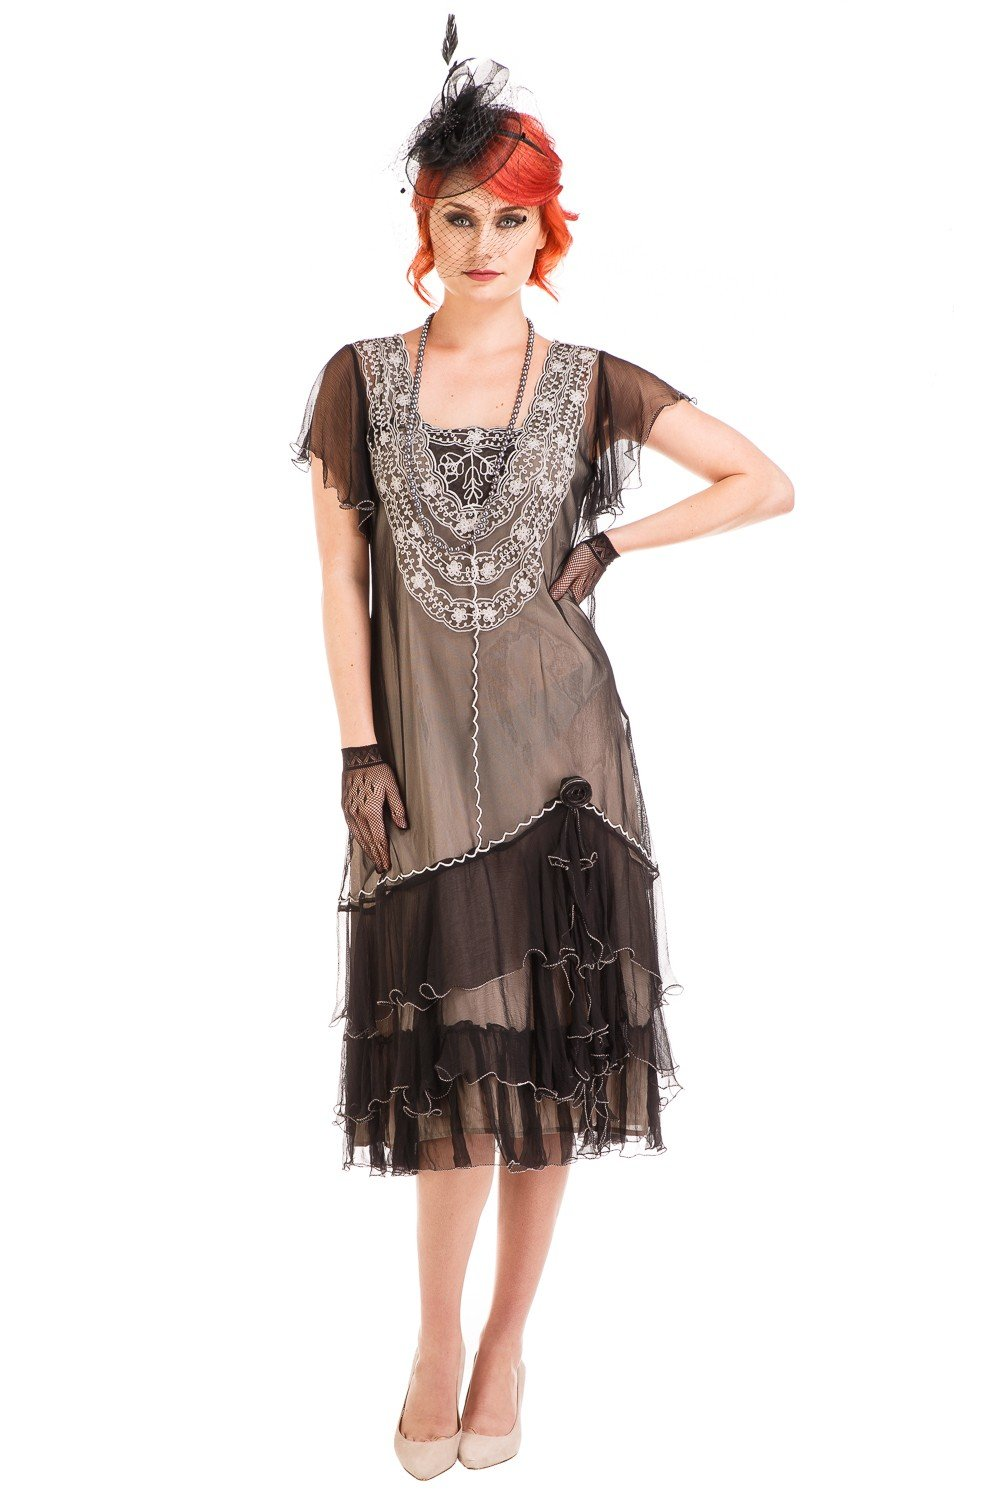 1920s Day Dresses, Tea Dresses, Mature Dresses with Sleeves Alexa 1920s Flapper Style Dress in Black-Silver by Nataya $250.00 AT vintagedancer.com